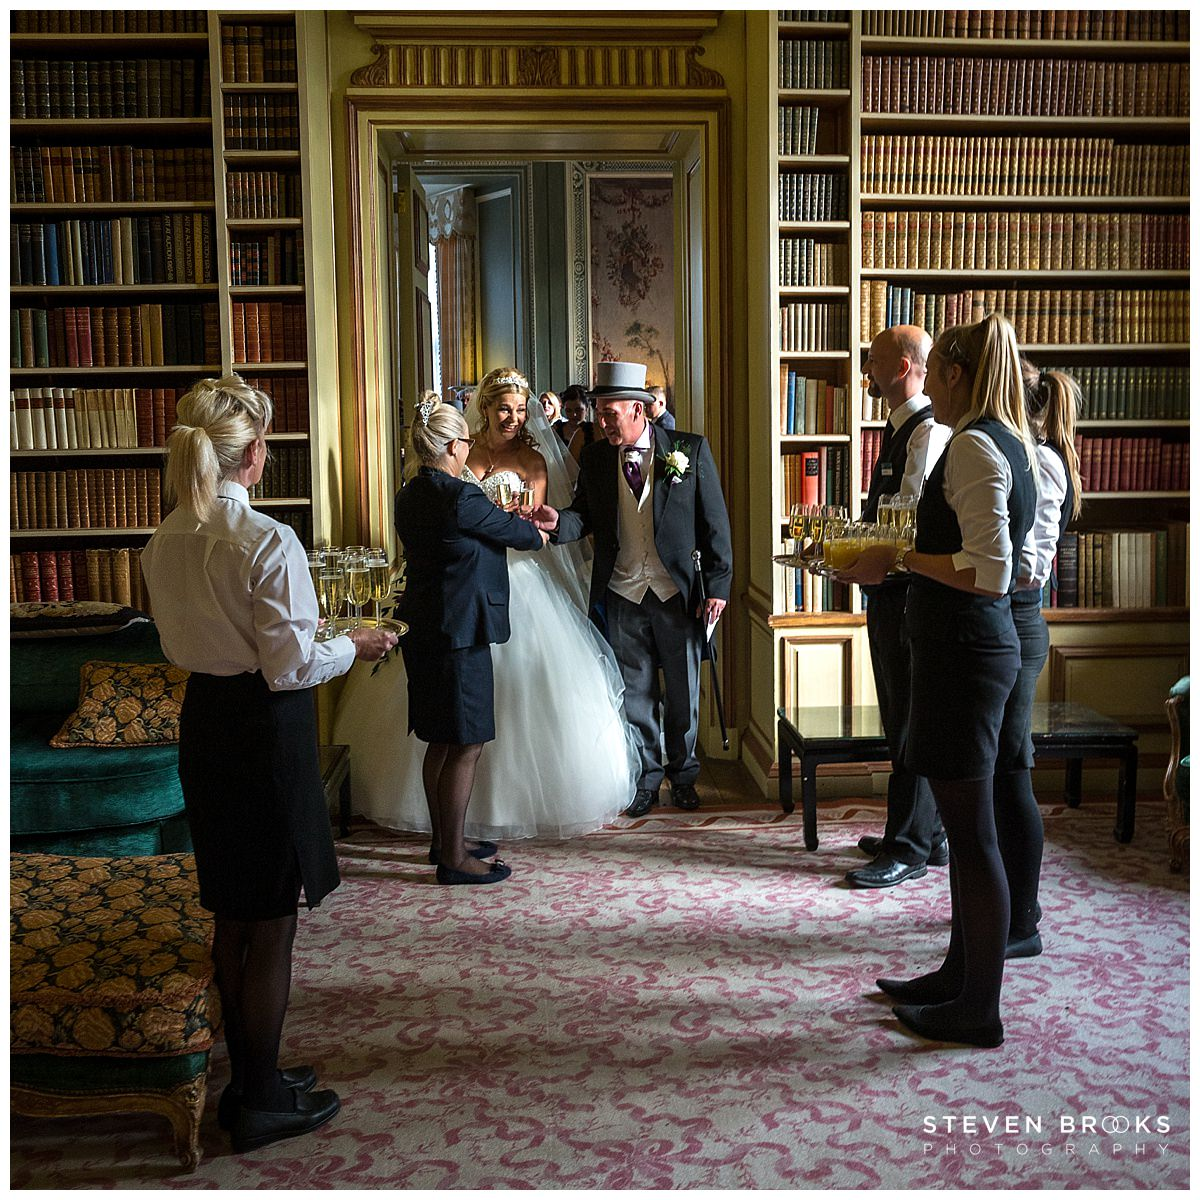 Leeds Castle wedding photographer steven brooks photographs the bride and groom in the Library at Leeds Castle to a welcome drink